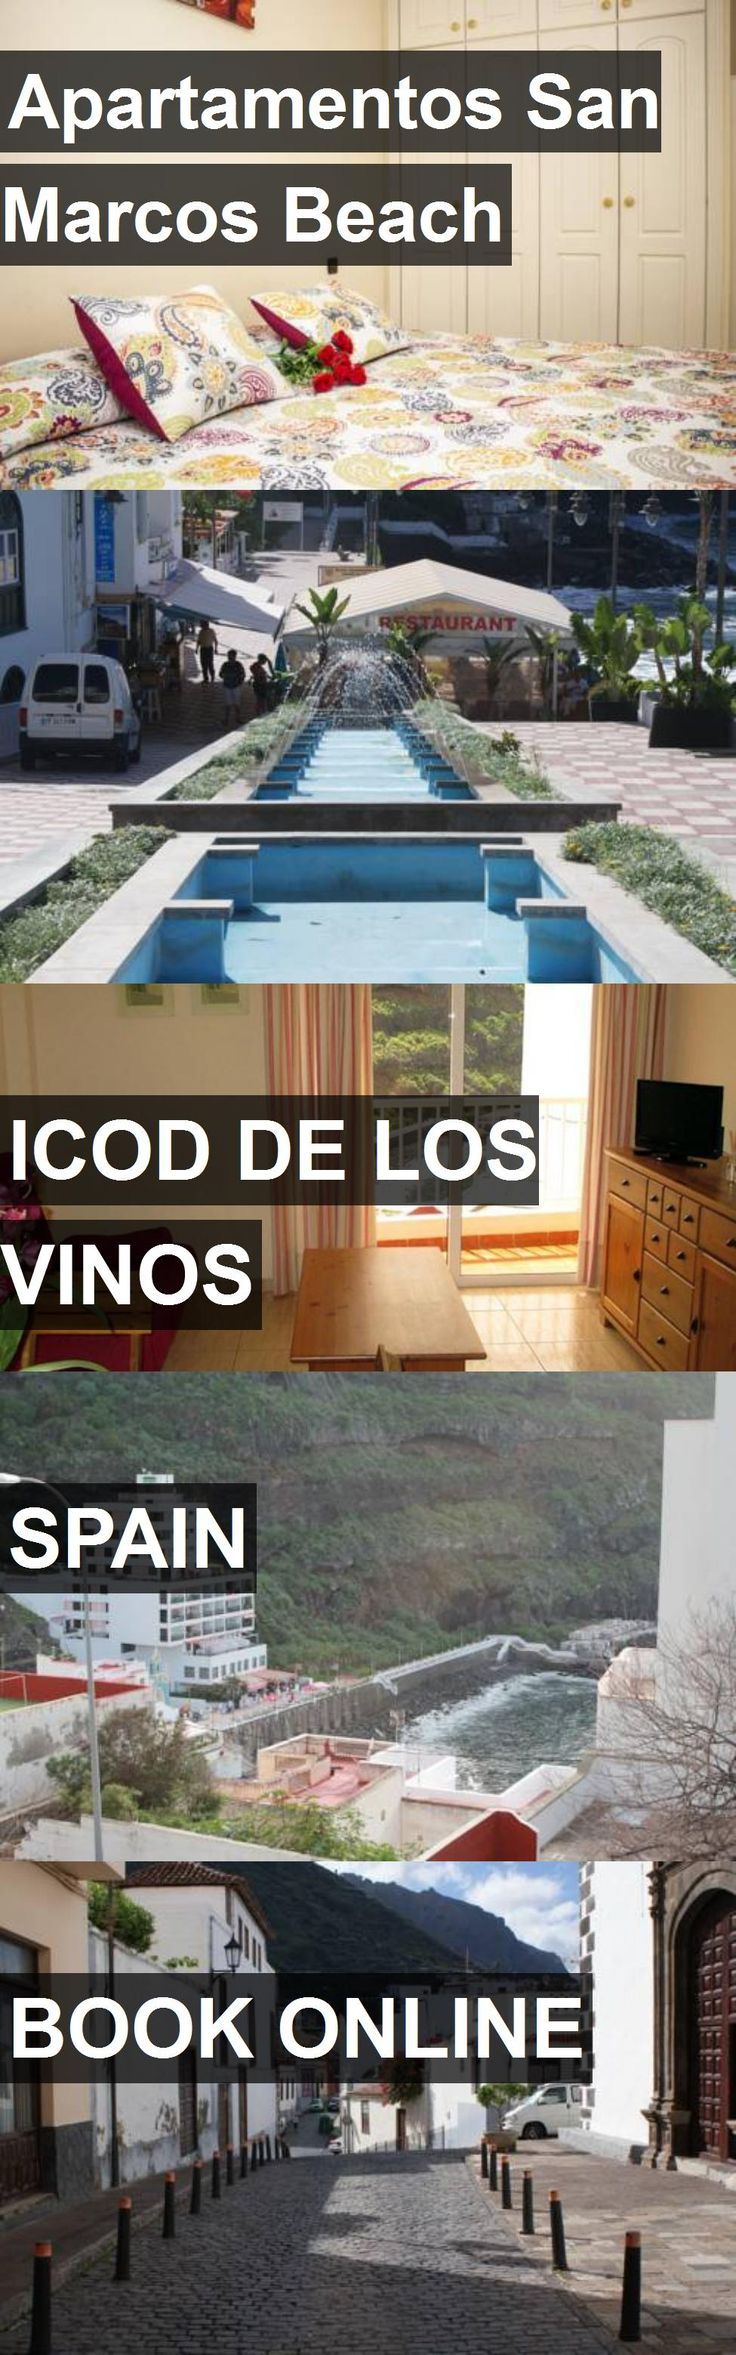 Hotel Apartamentos San Marcos Beach in Icod De Los Vinos, Spain. For more information, photos, reviews and best prices please follow the link. #Spain #IcodDeLosVinos #travel #vacation #hotel